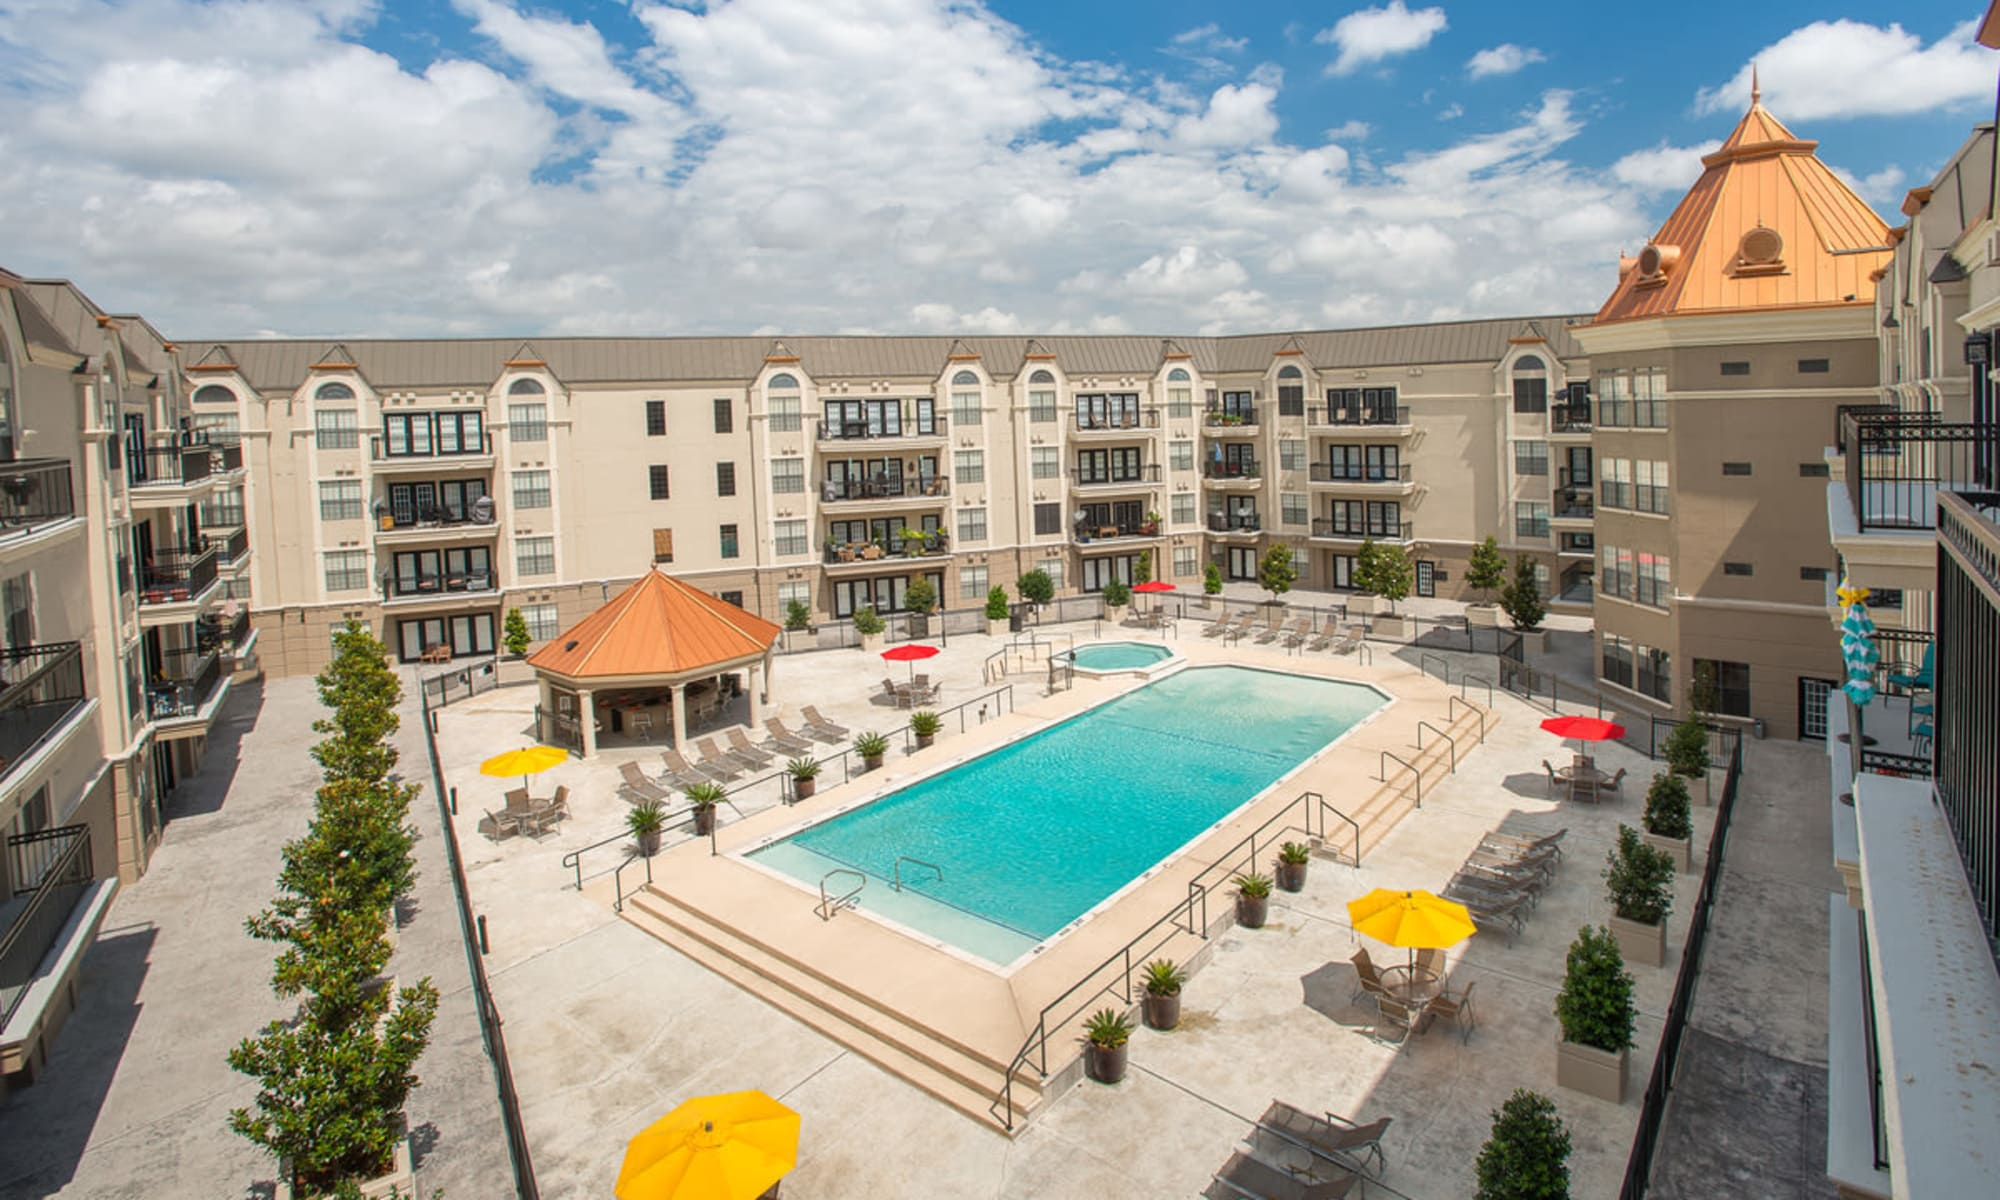 Apartments at Chateau de Ville in Farmers Branch, Texas